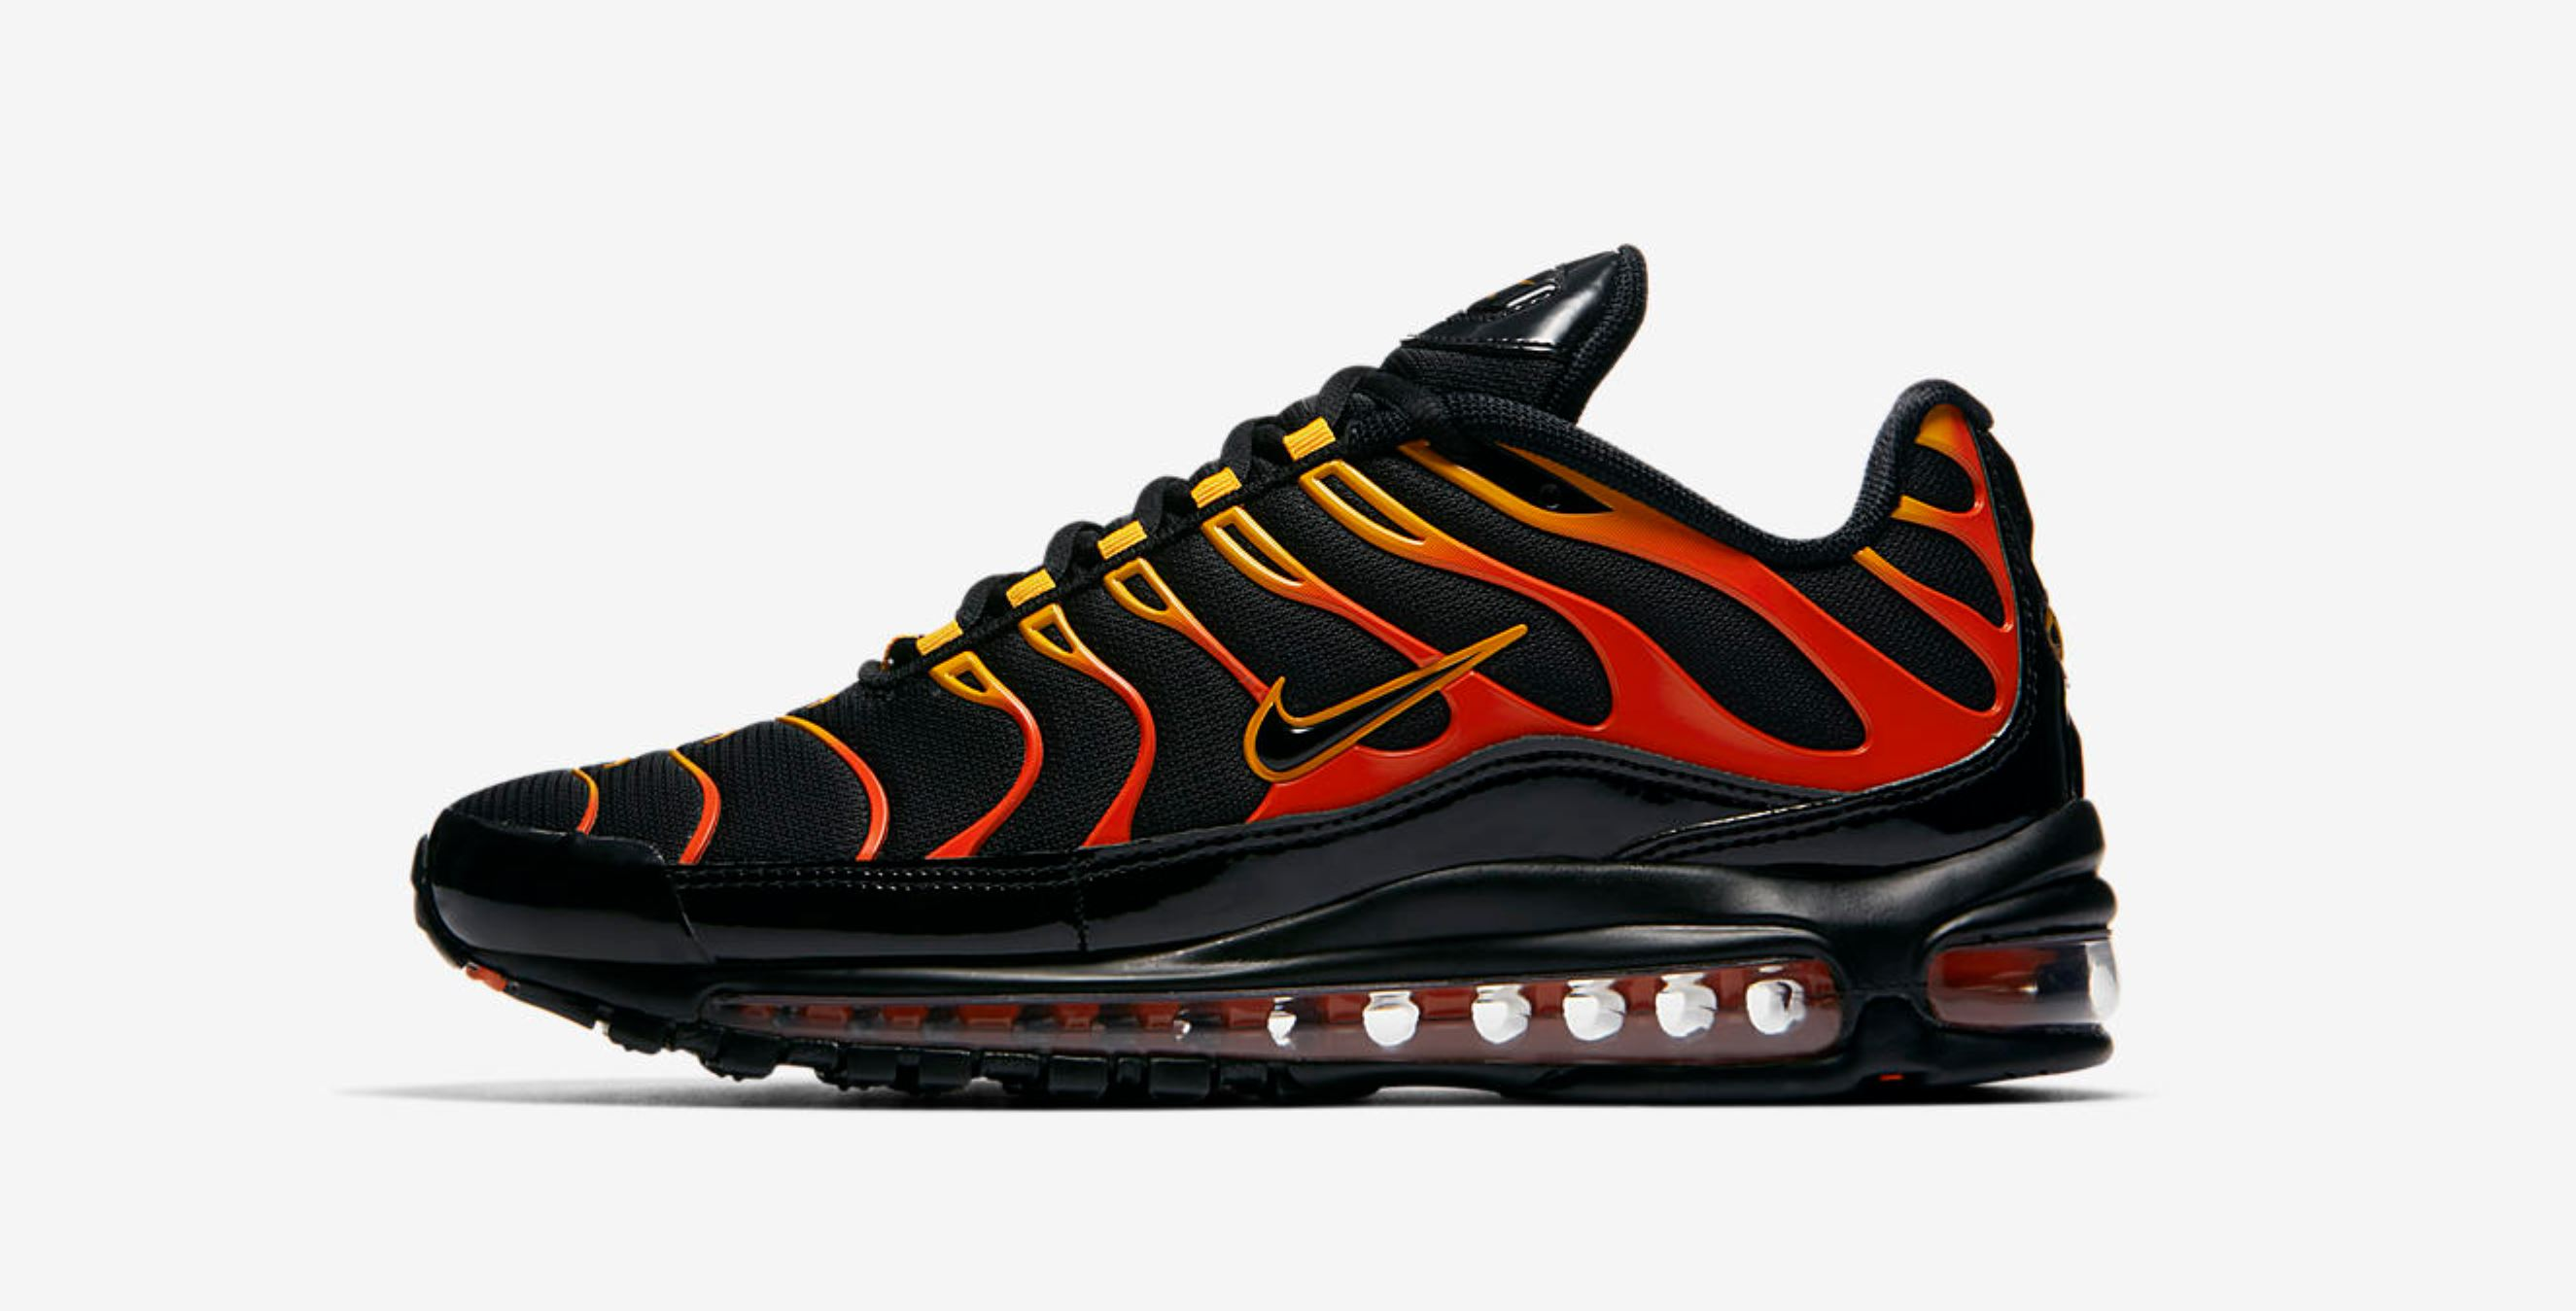 Flame On with the Nike Air Max Plus 97 'Shock Orange